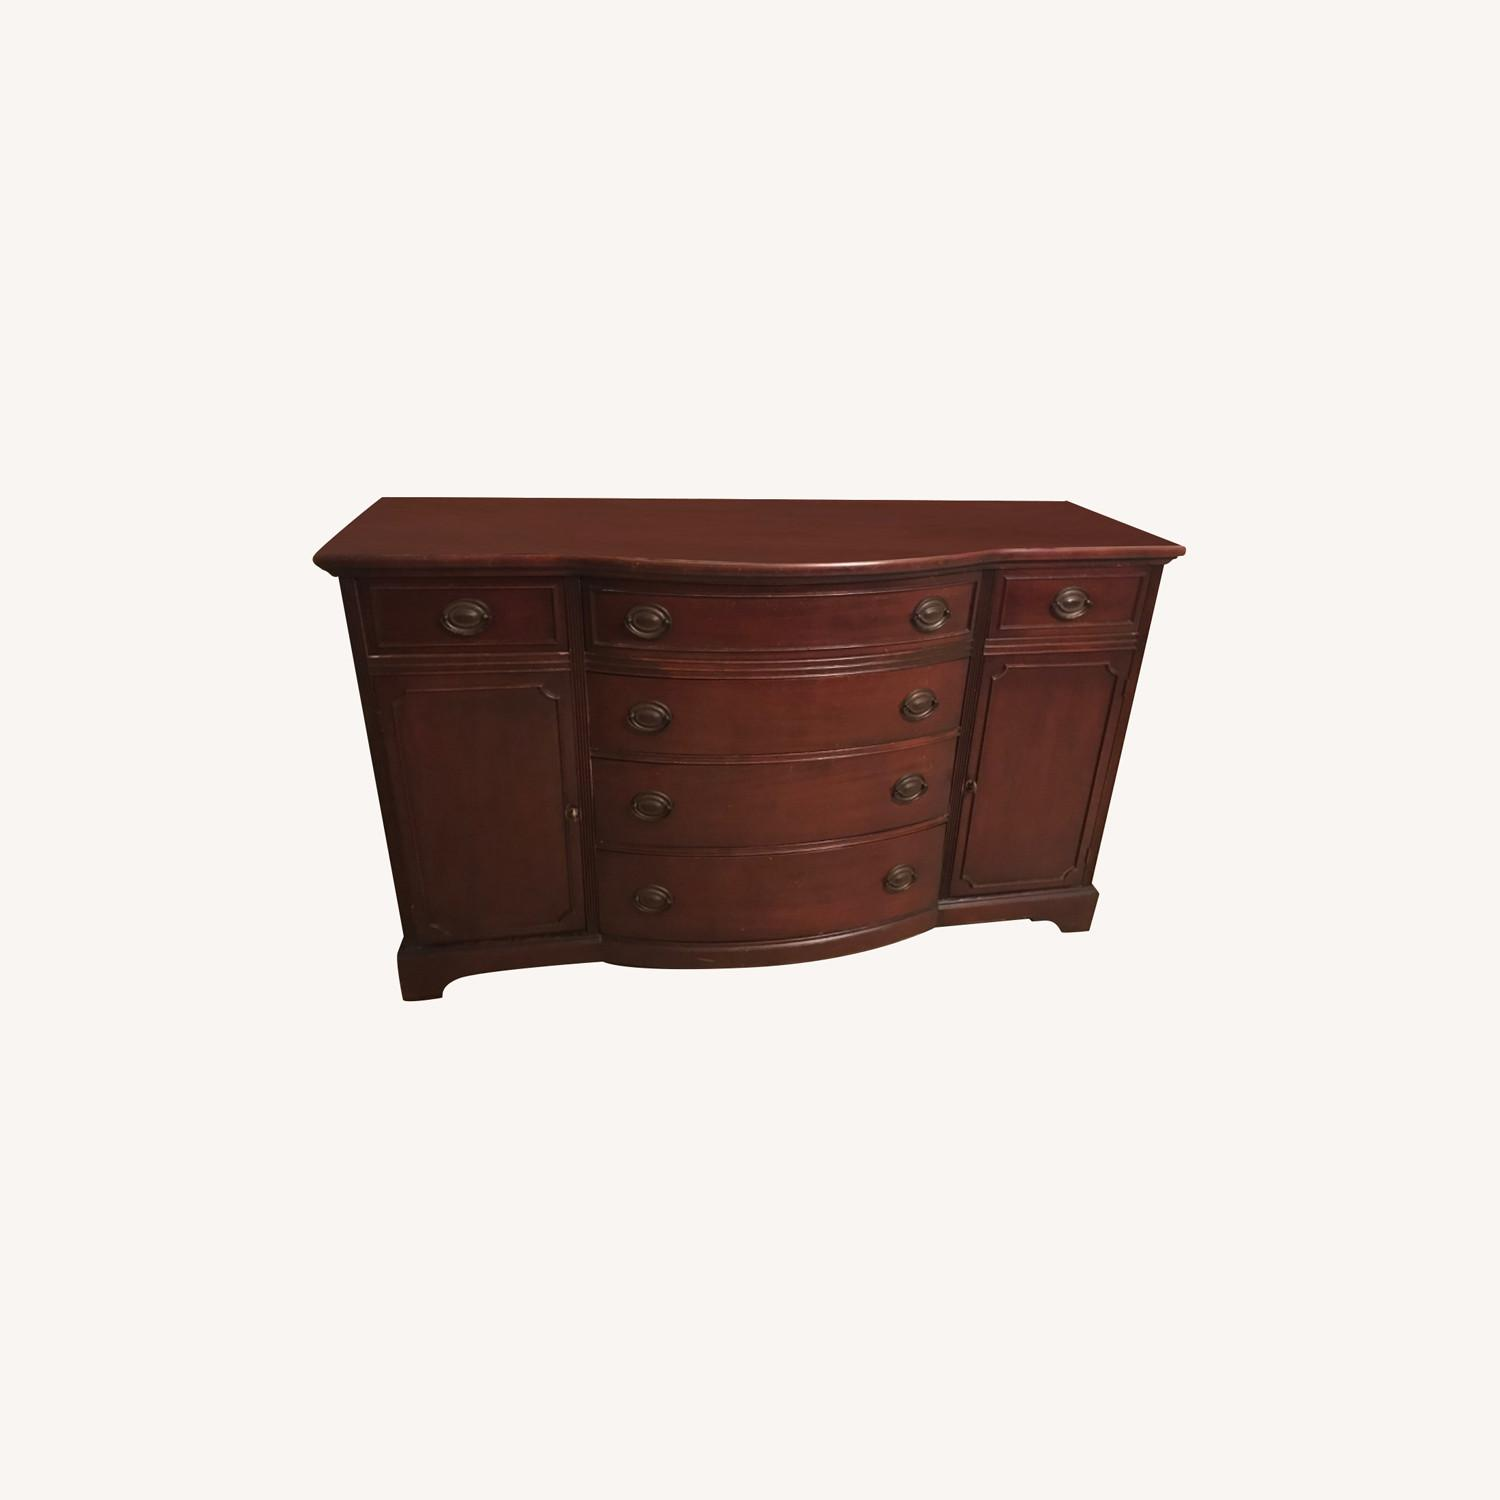 Drexel Mahogany Buffet -Sideboard Chest - image-0